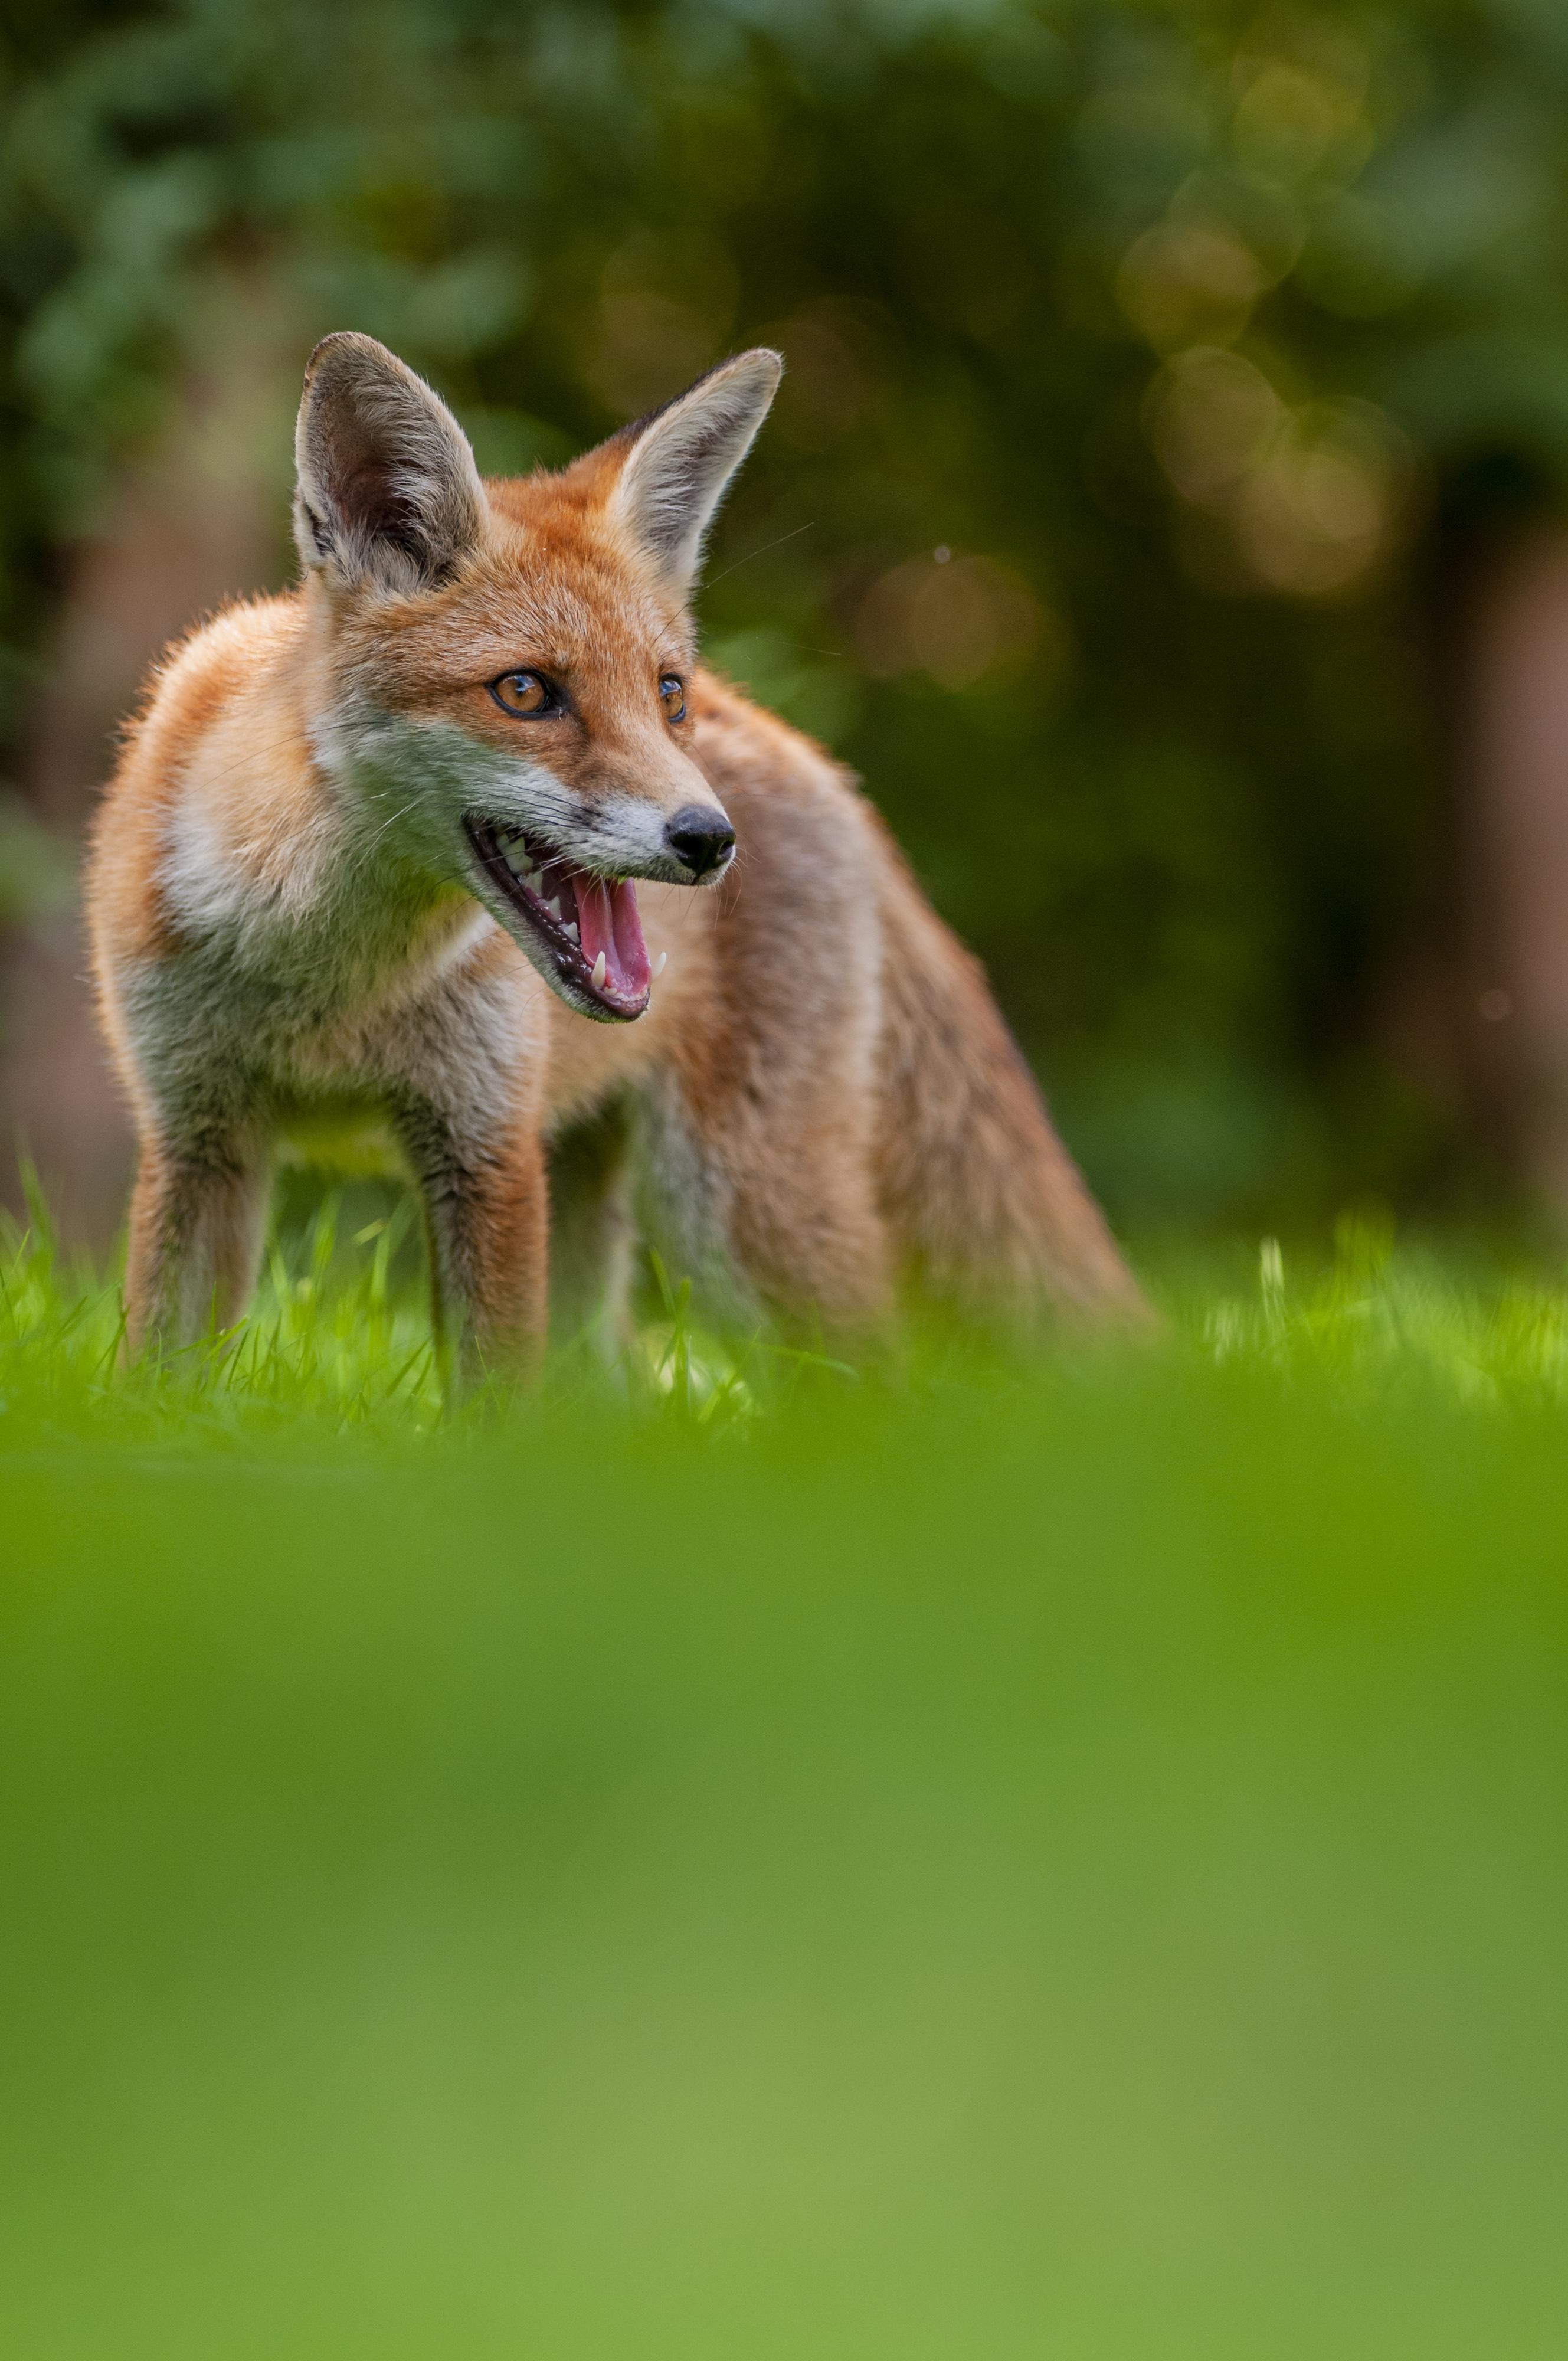 Fox on a lawn with a shallow depth of field